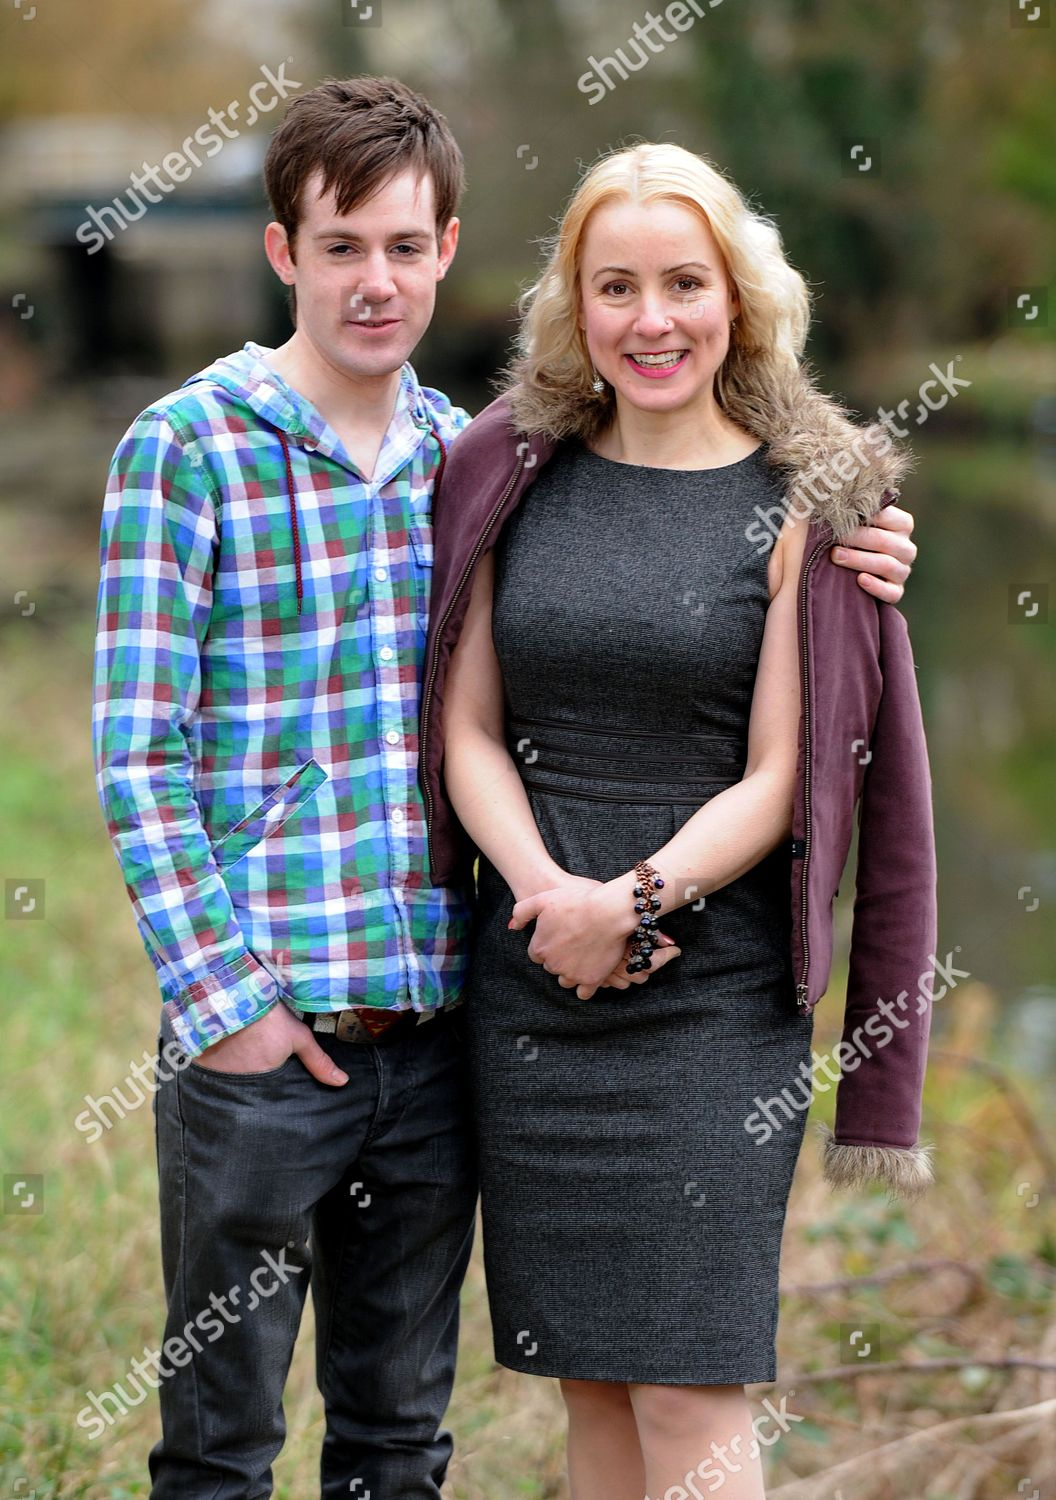 41Yearold Soraya Wasenius 20Yearold Boyfriend Jack Button Editorial Stock Photo -8931